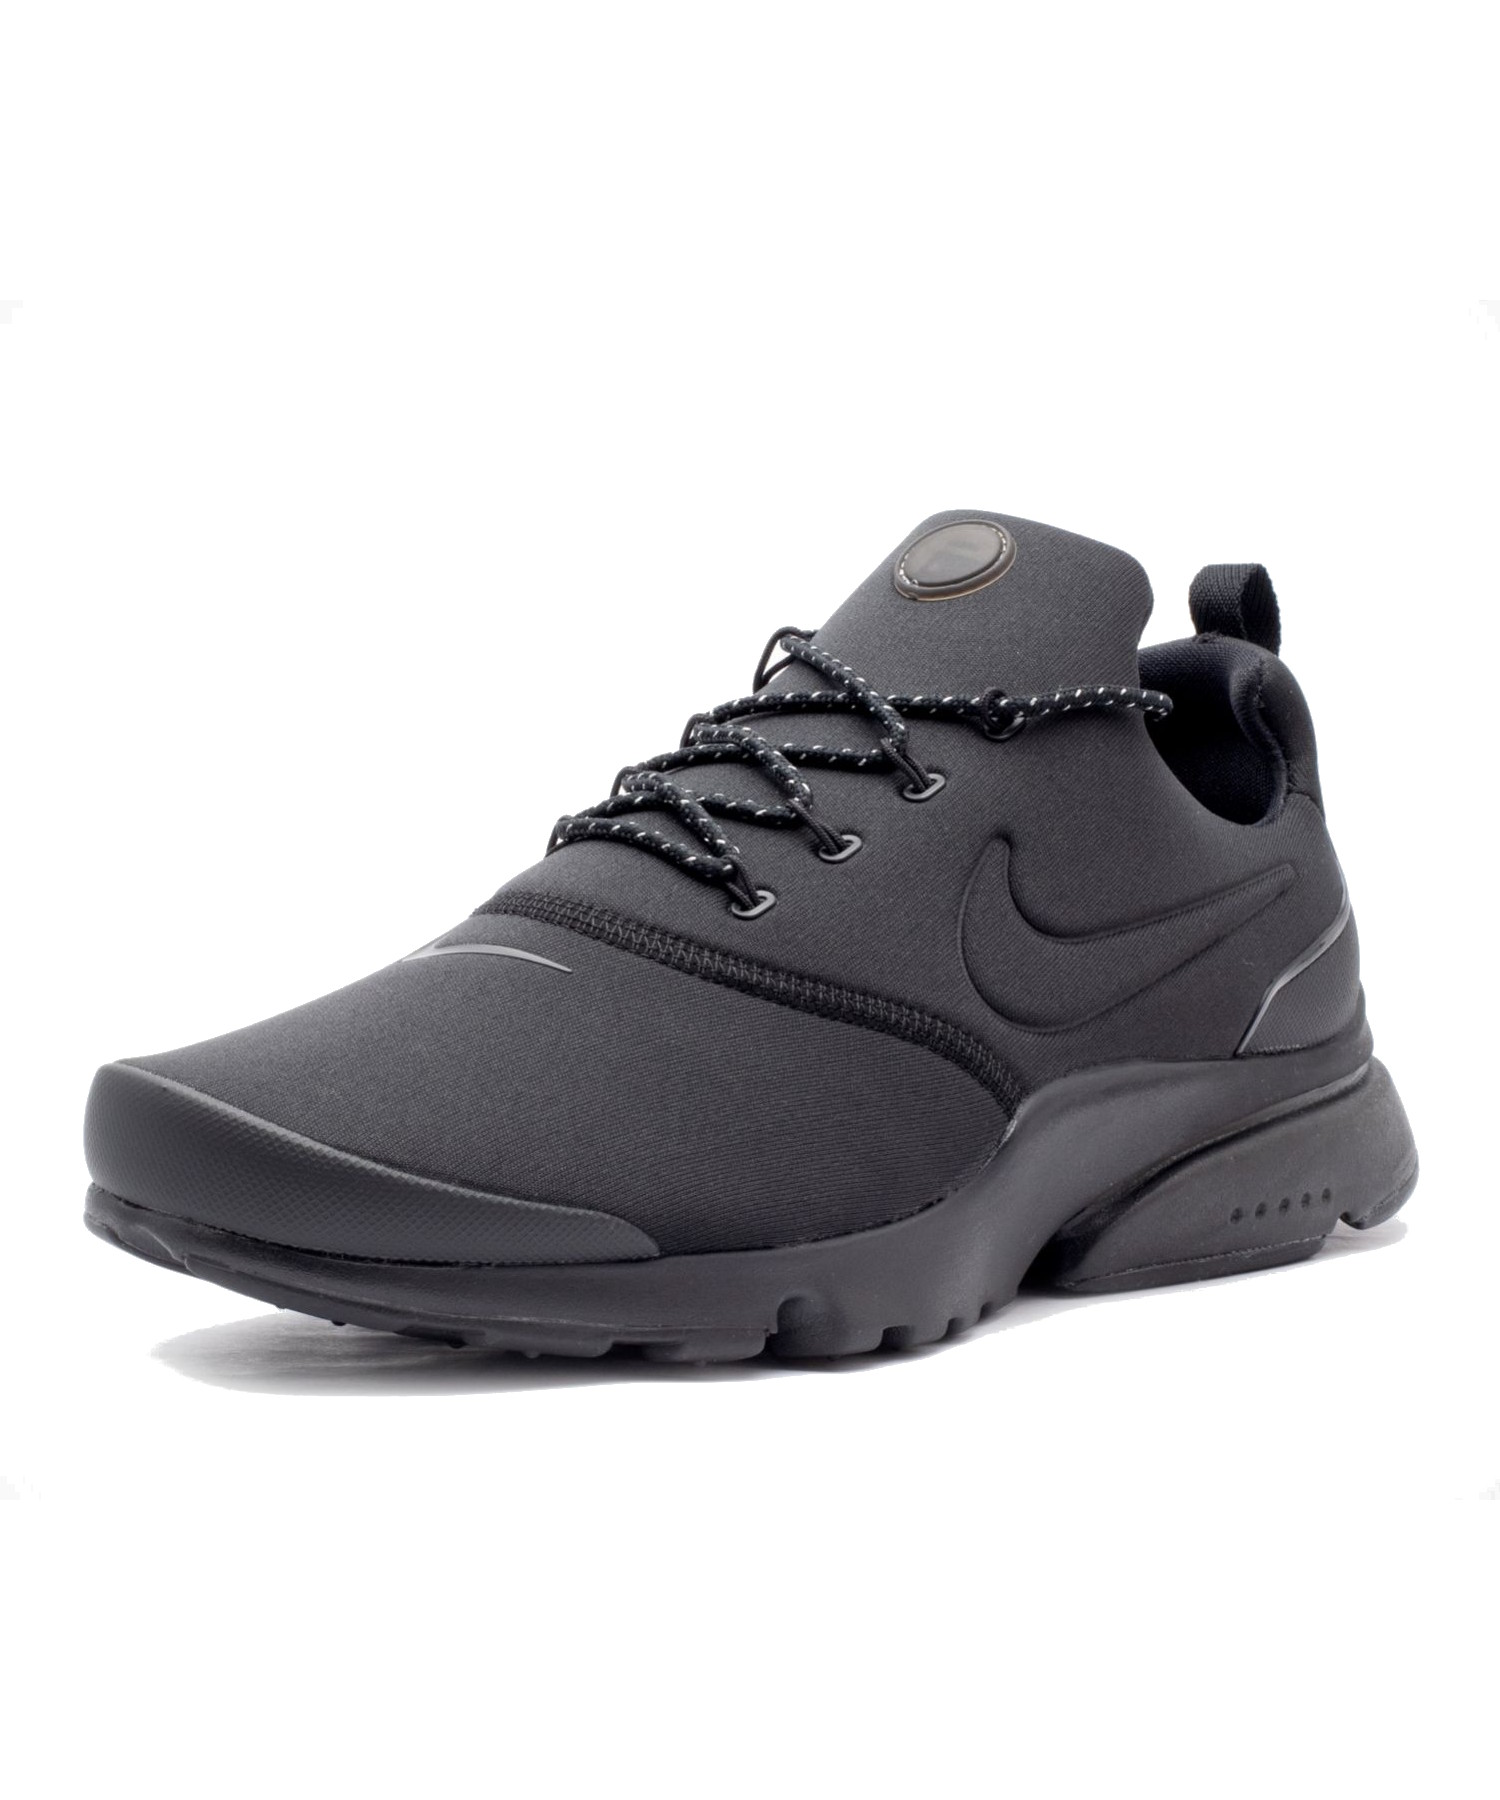 brand new 3f378 76ab0 Nike-Chaussures-sportif-Mesh-Sneakers-Shoes-Sport-Air-